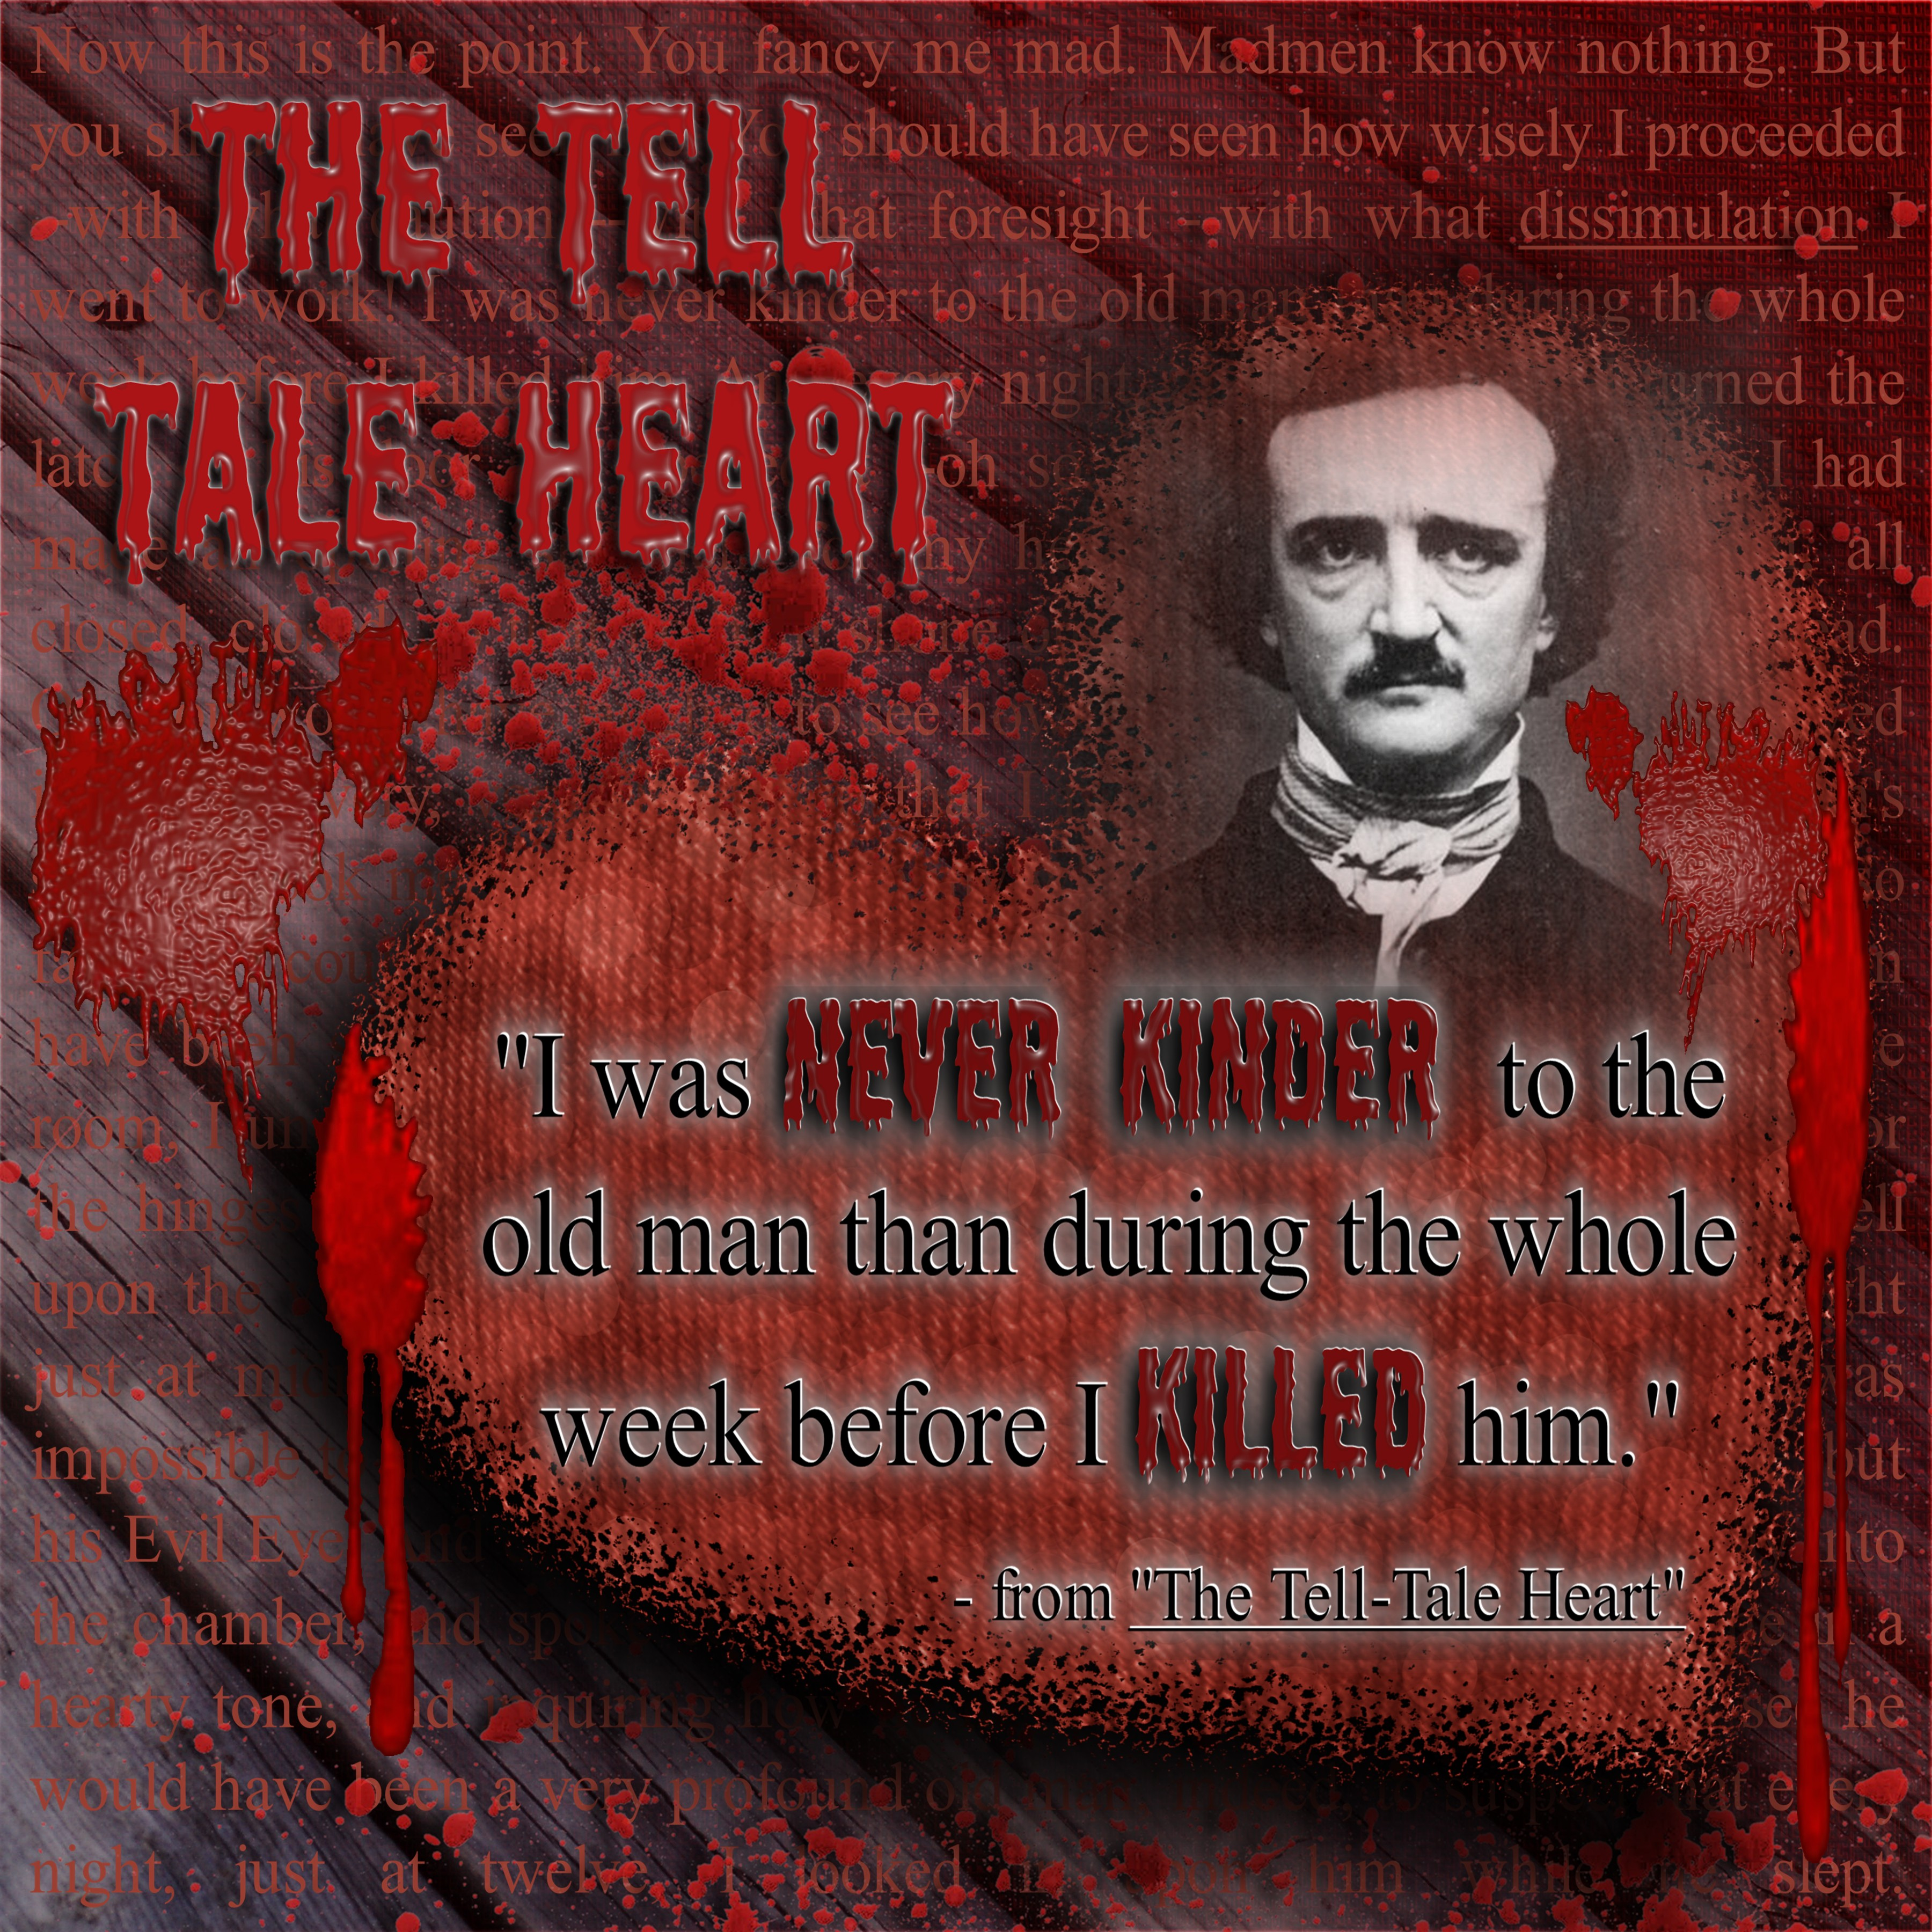 a brief analysis of the tell tale heart by edgar allan poe While they are all shooting the breeze, the narrator starts hearing a terrible ticking noise, which gets louder and louder until the narrator freaks out, confesses, and points the police to the old man's body, stating that the sound is coming from the old man's heart.